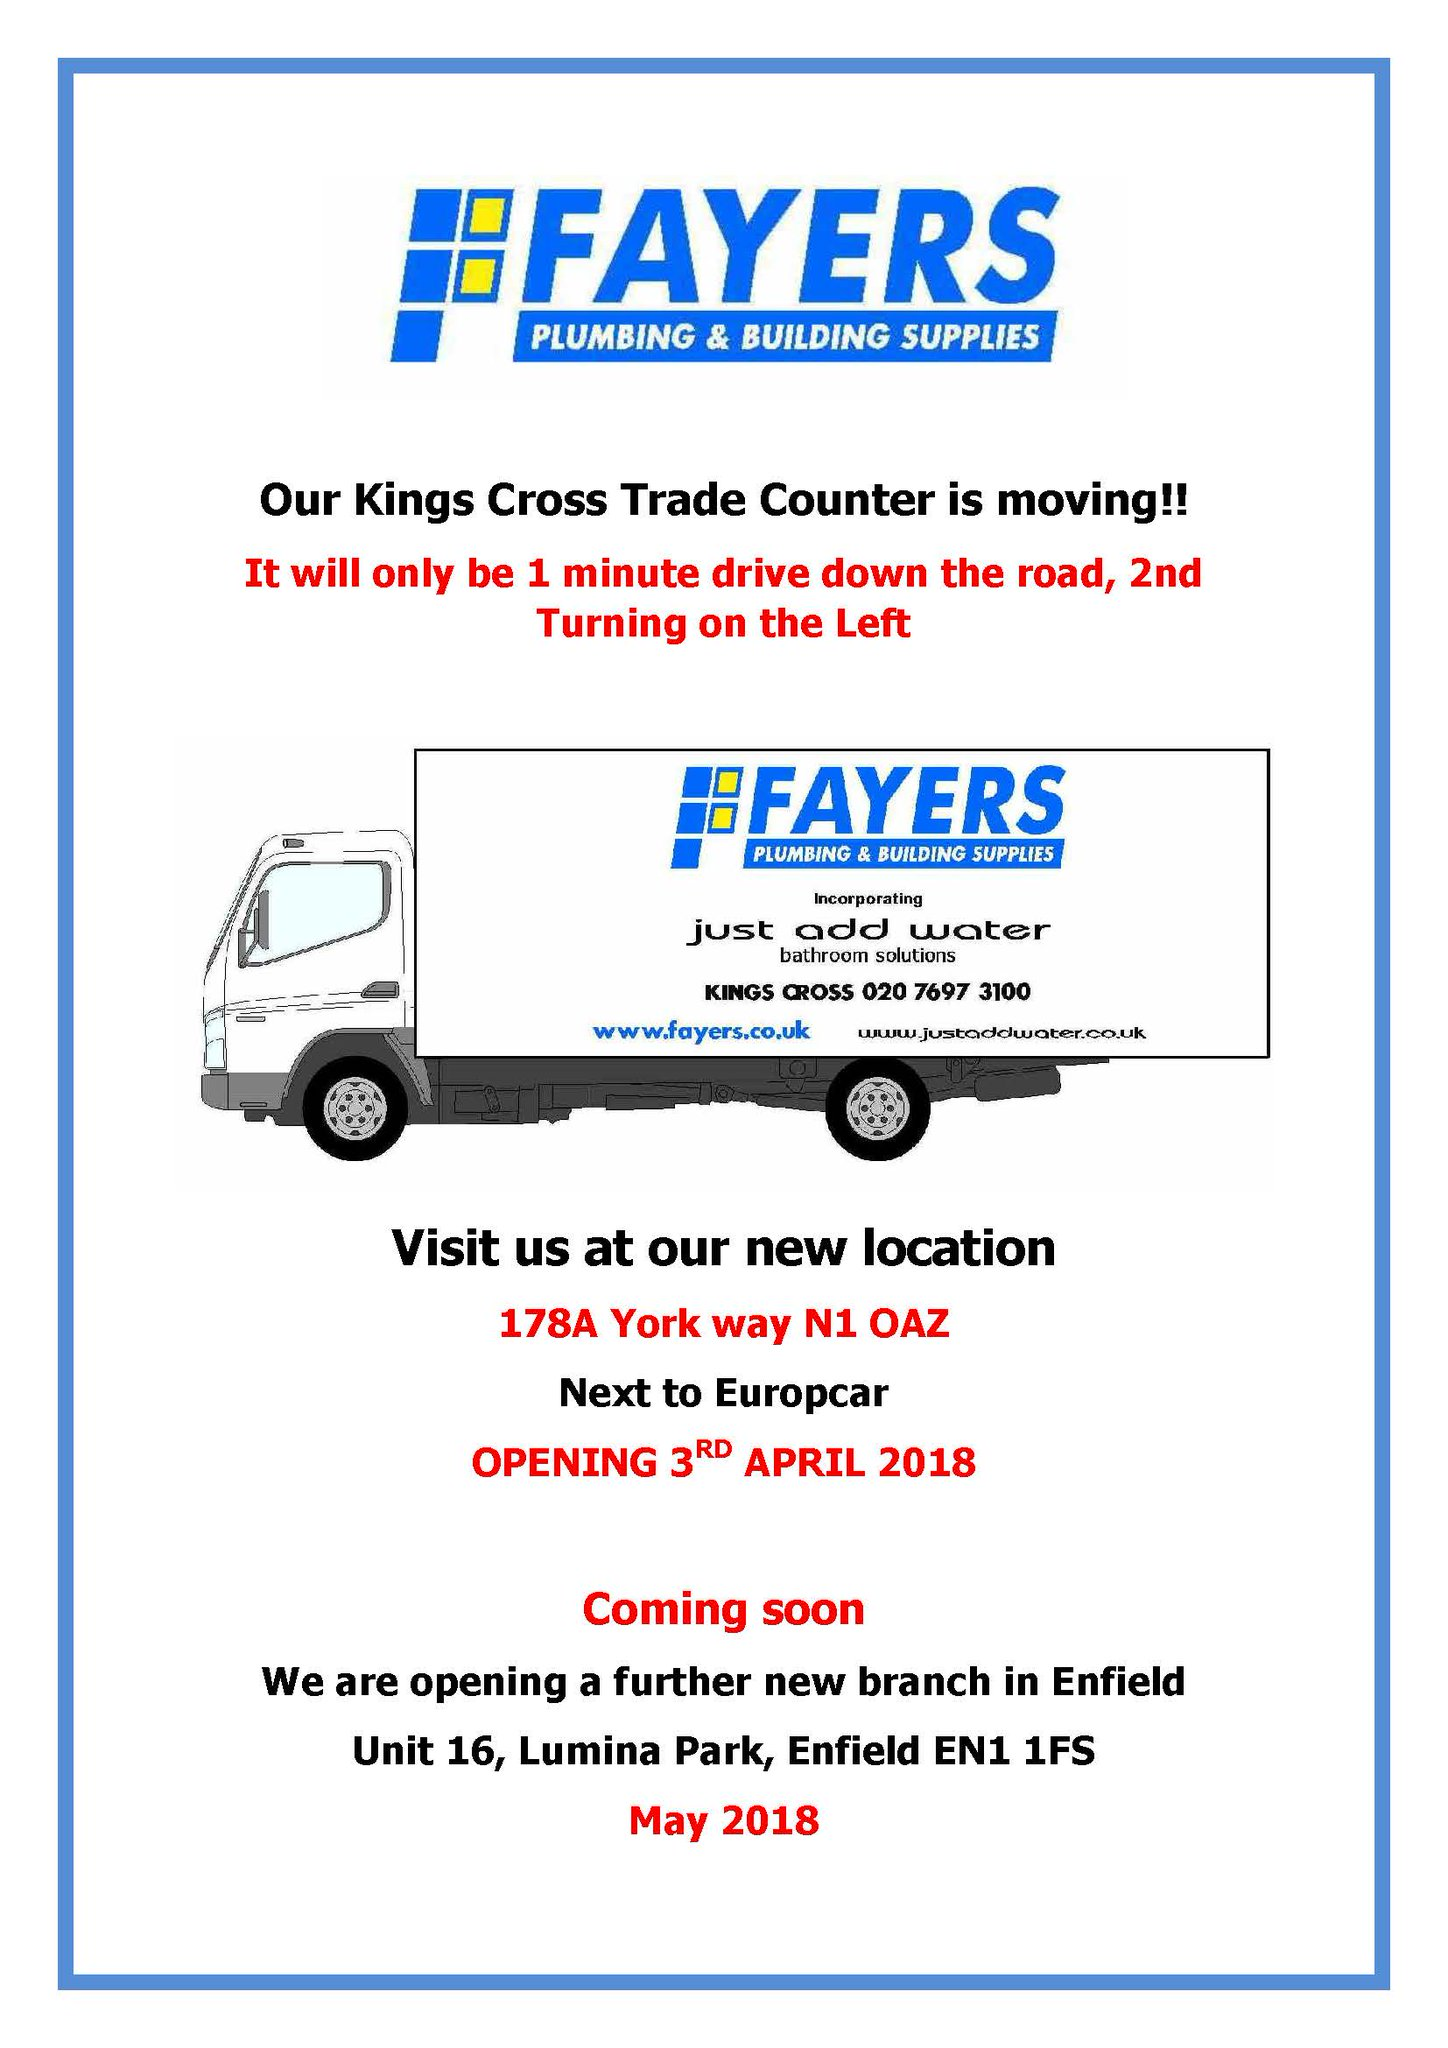 Fayers Plumbing On Twitter Have You Heard Our News Our Kings